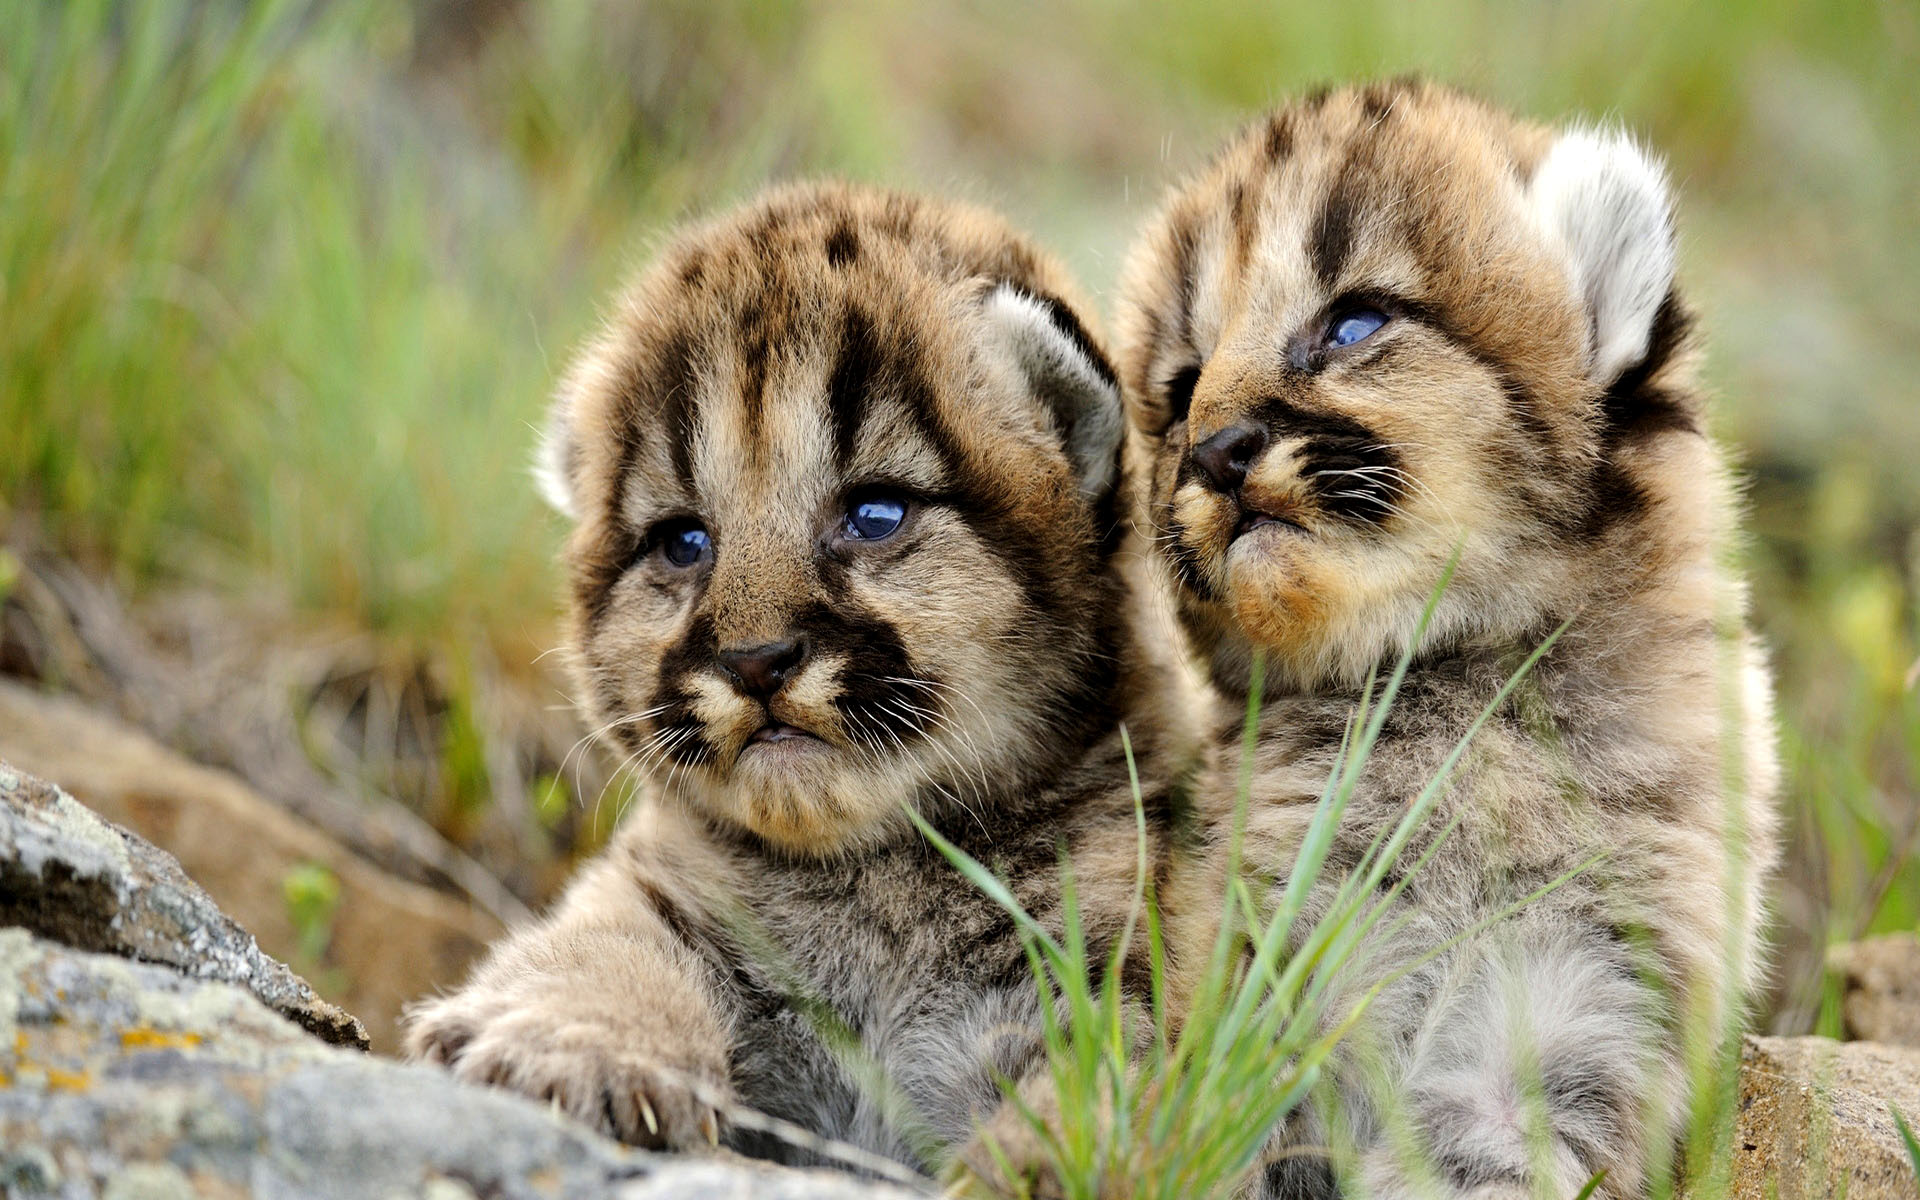 Small tiger cubs picture